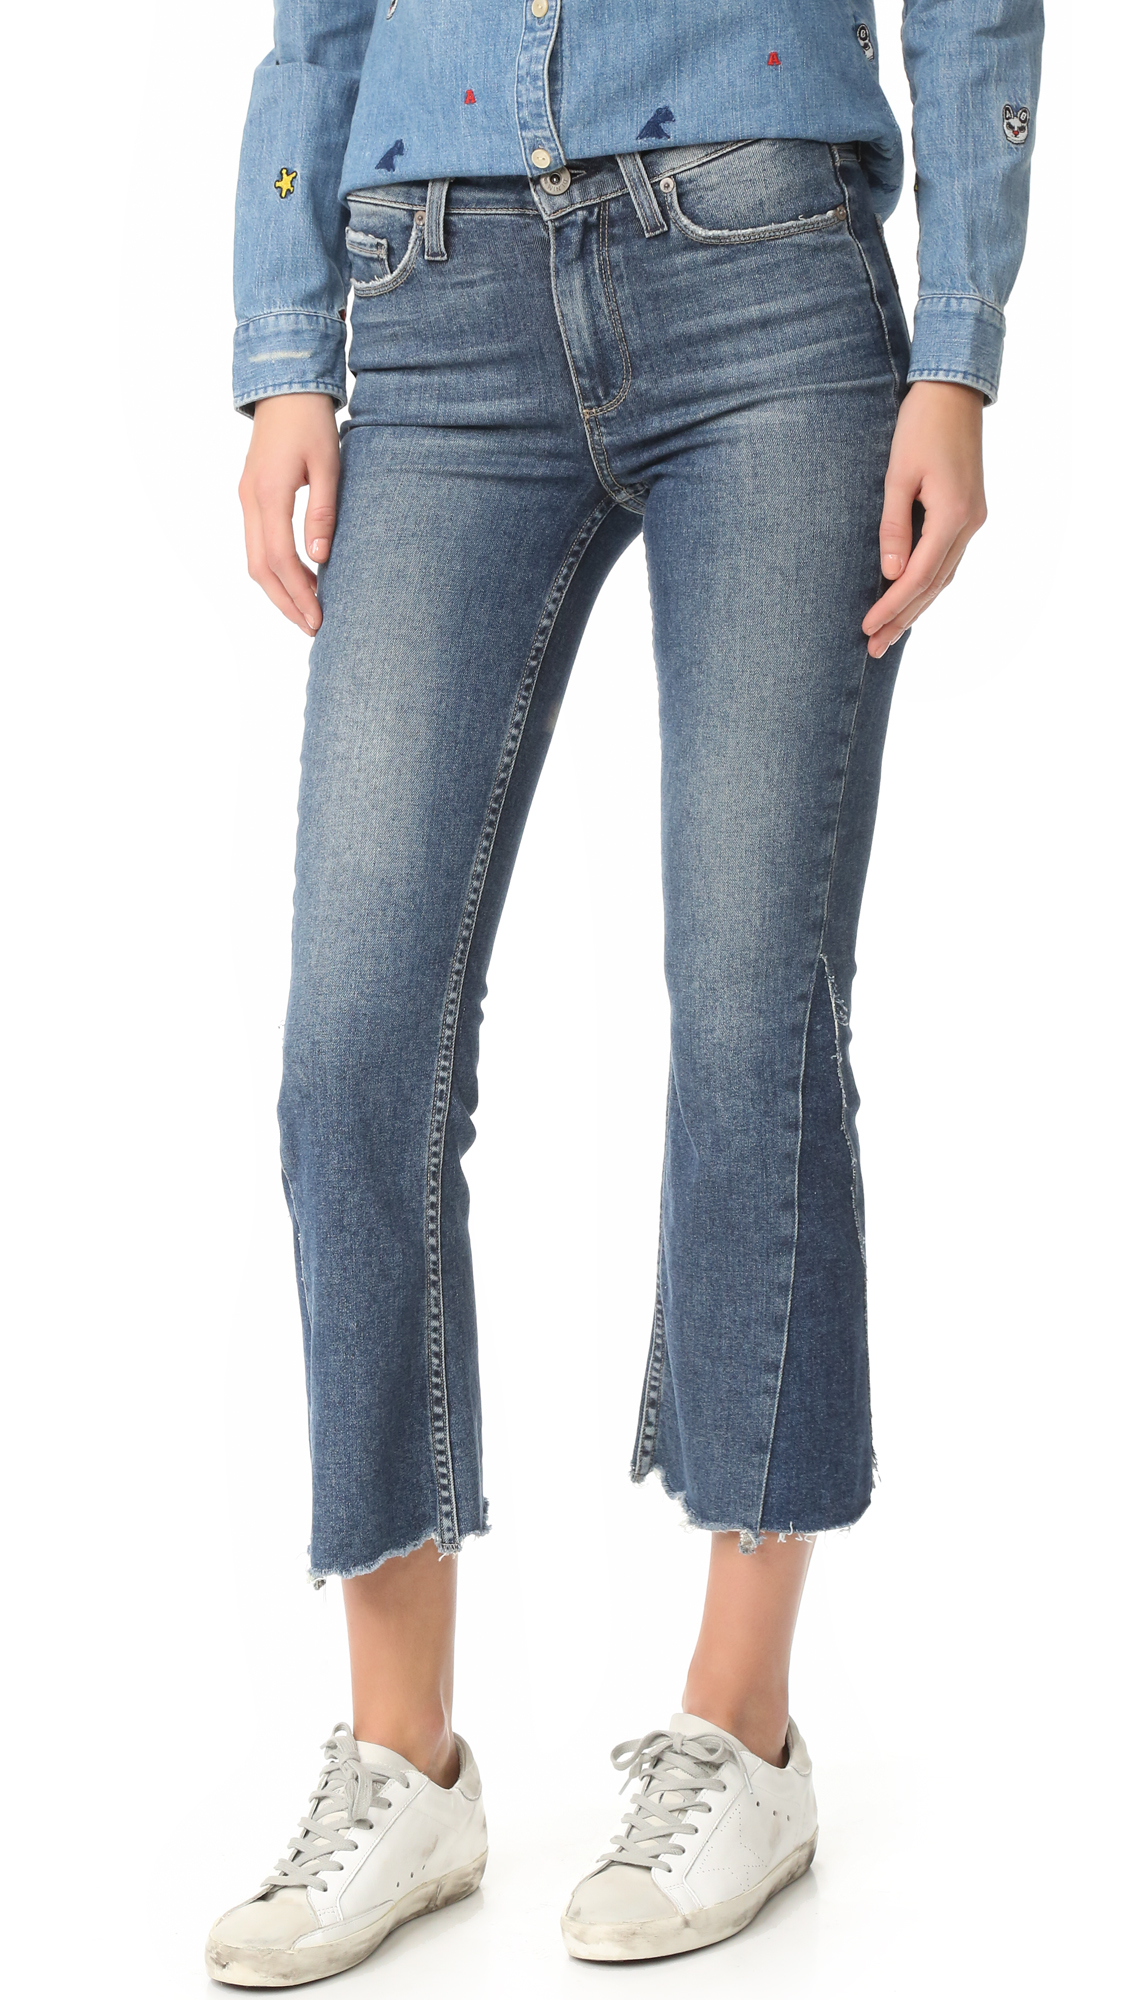 Cropped, faded PAIGE flares with frayed cuffs and gusseted sides. Worn edges. 5 pocket styling. Button closure and zip fly. Fabric: Stretch denim. 93% cotton/6% polyester/1% spandex. Wash cold. Made in the USA. Measurements Rise: 9.5in / 24cm Inseam: 26